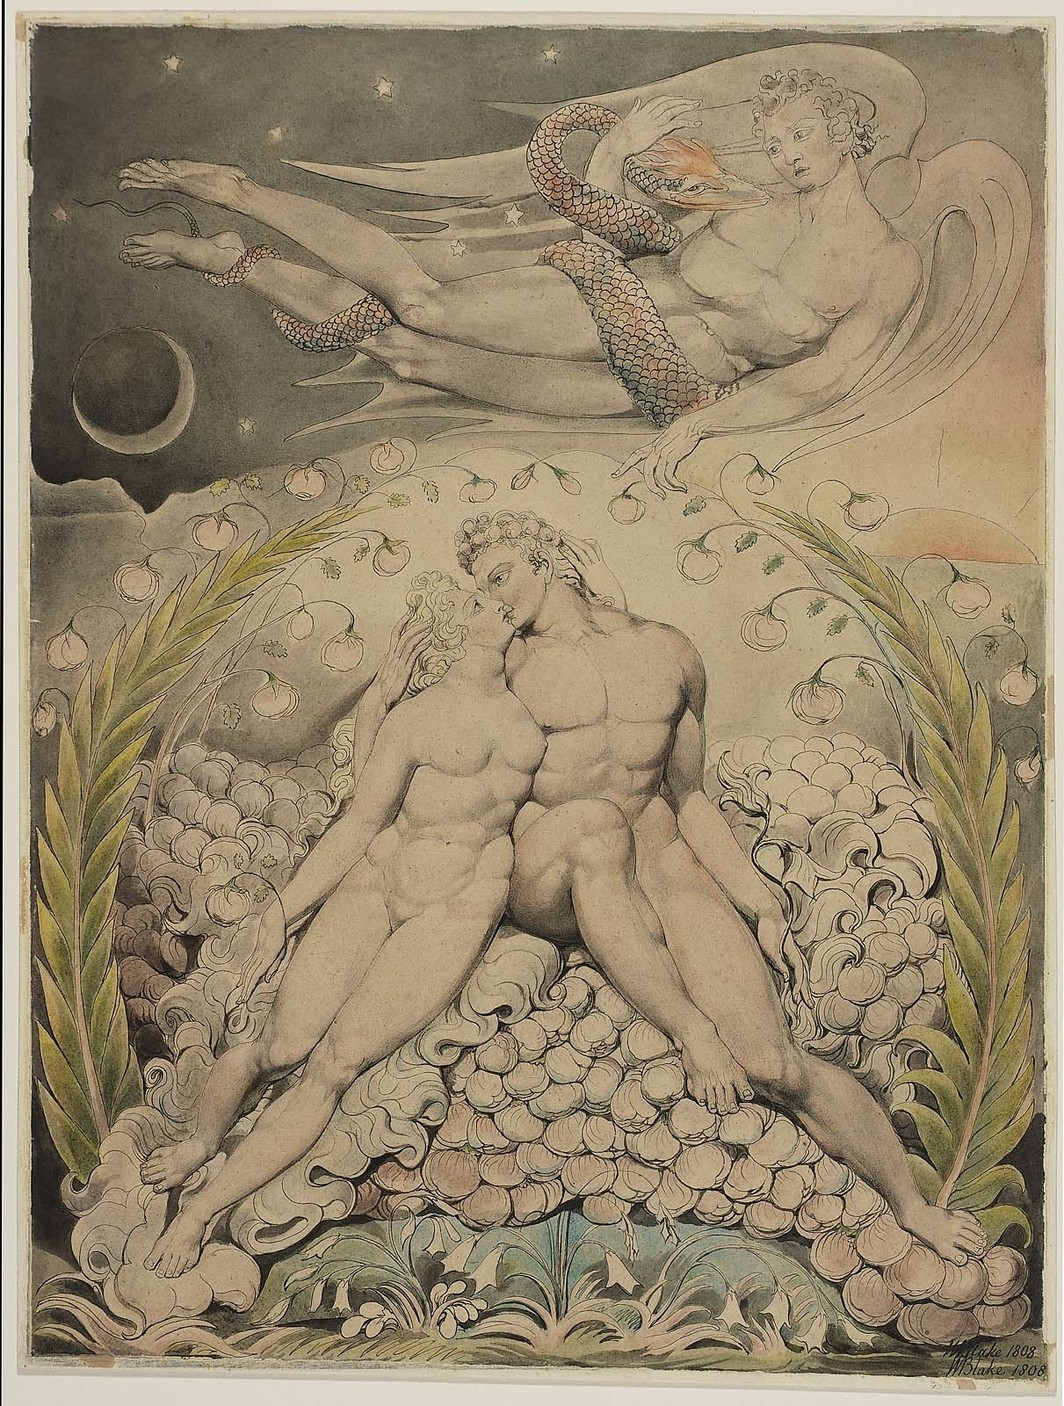 "William Blake, Satan Watching the Caresses of Adam and Eve, 1808, pen and watercolor on paper, 19 7/8 x 14 15/16"". From Milton's Paradise Lost. 